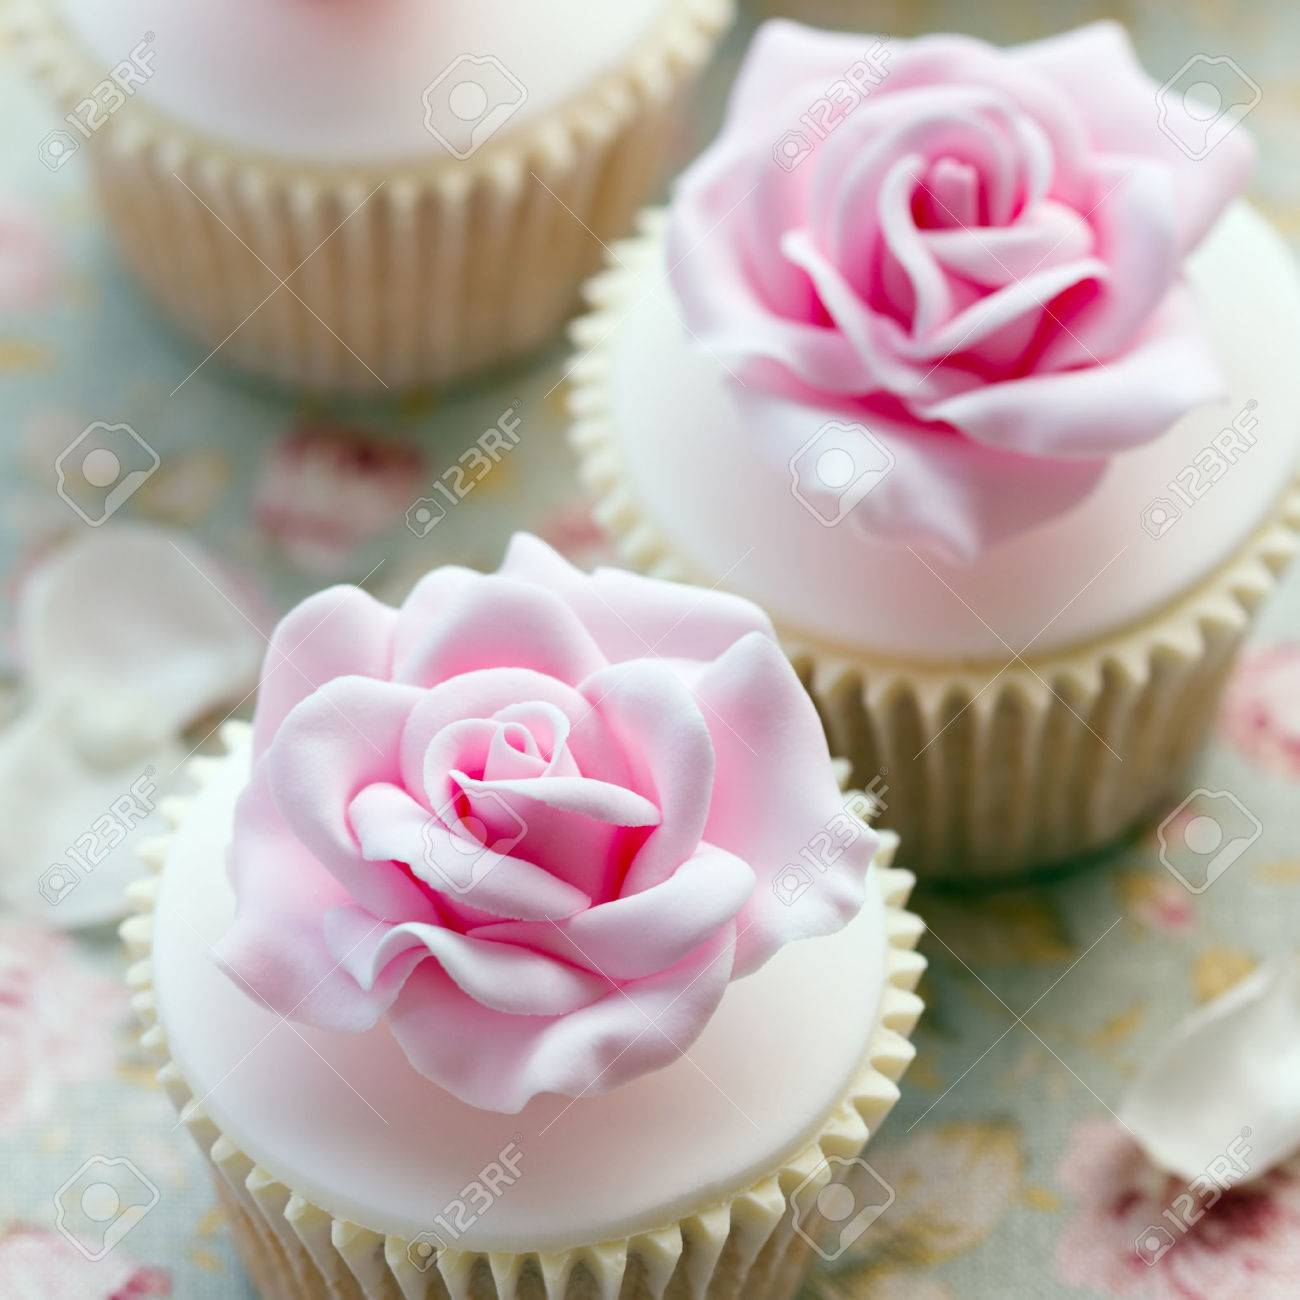 Rose Cupcakes For A Wedding Stock Photo, Picture And Royalty Free ...